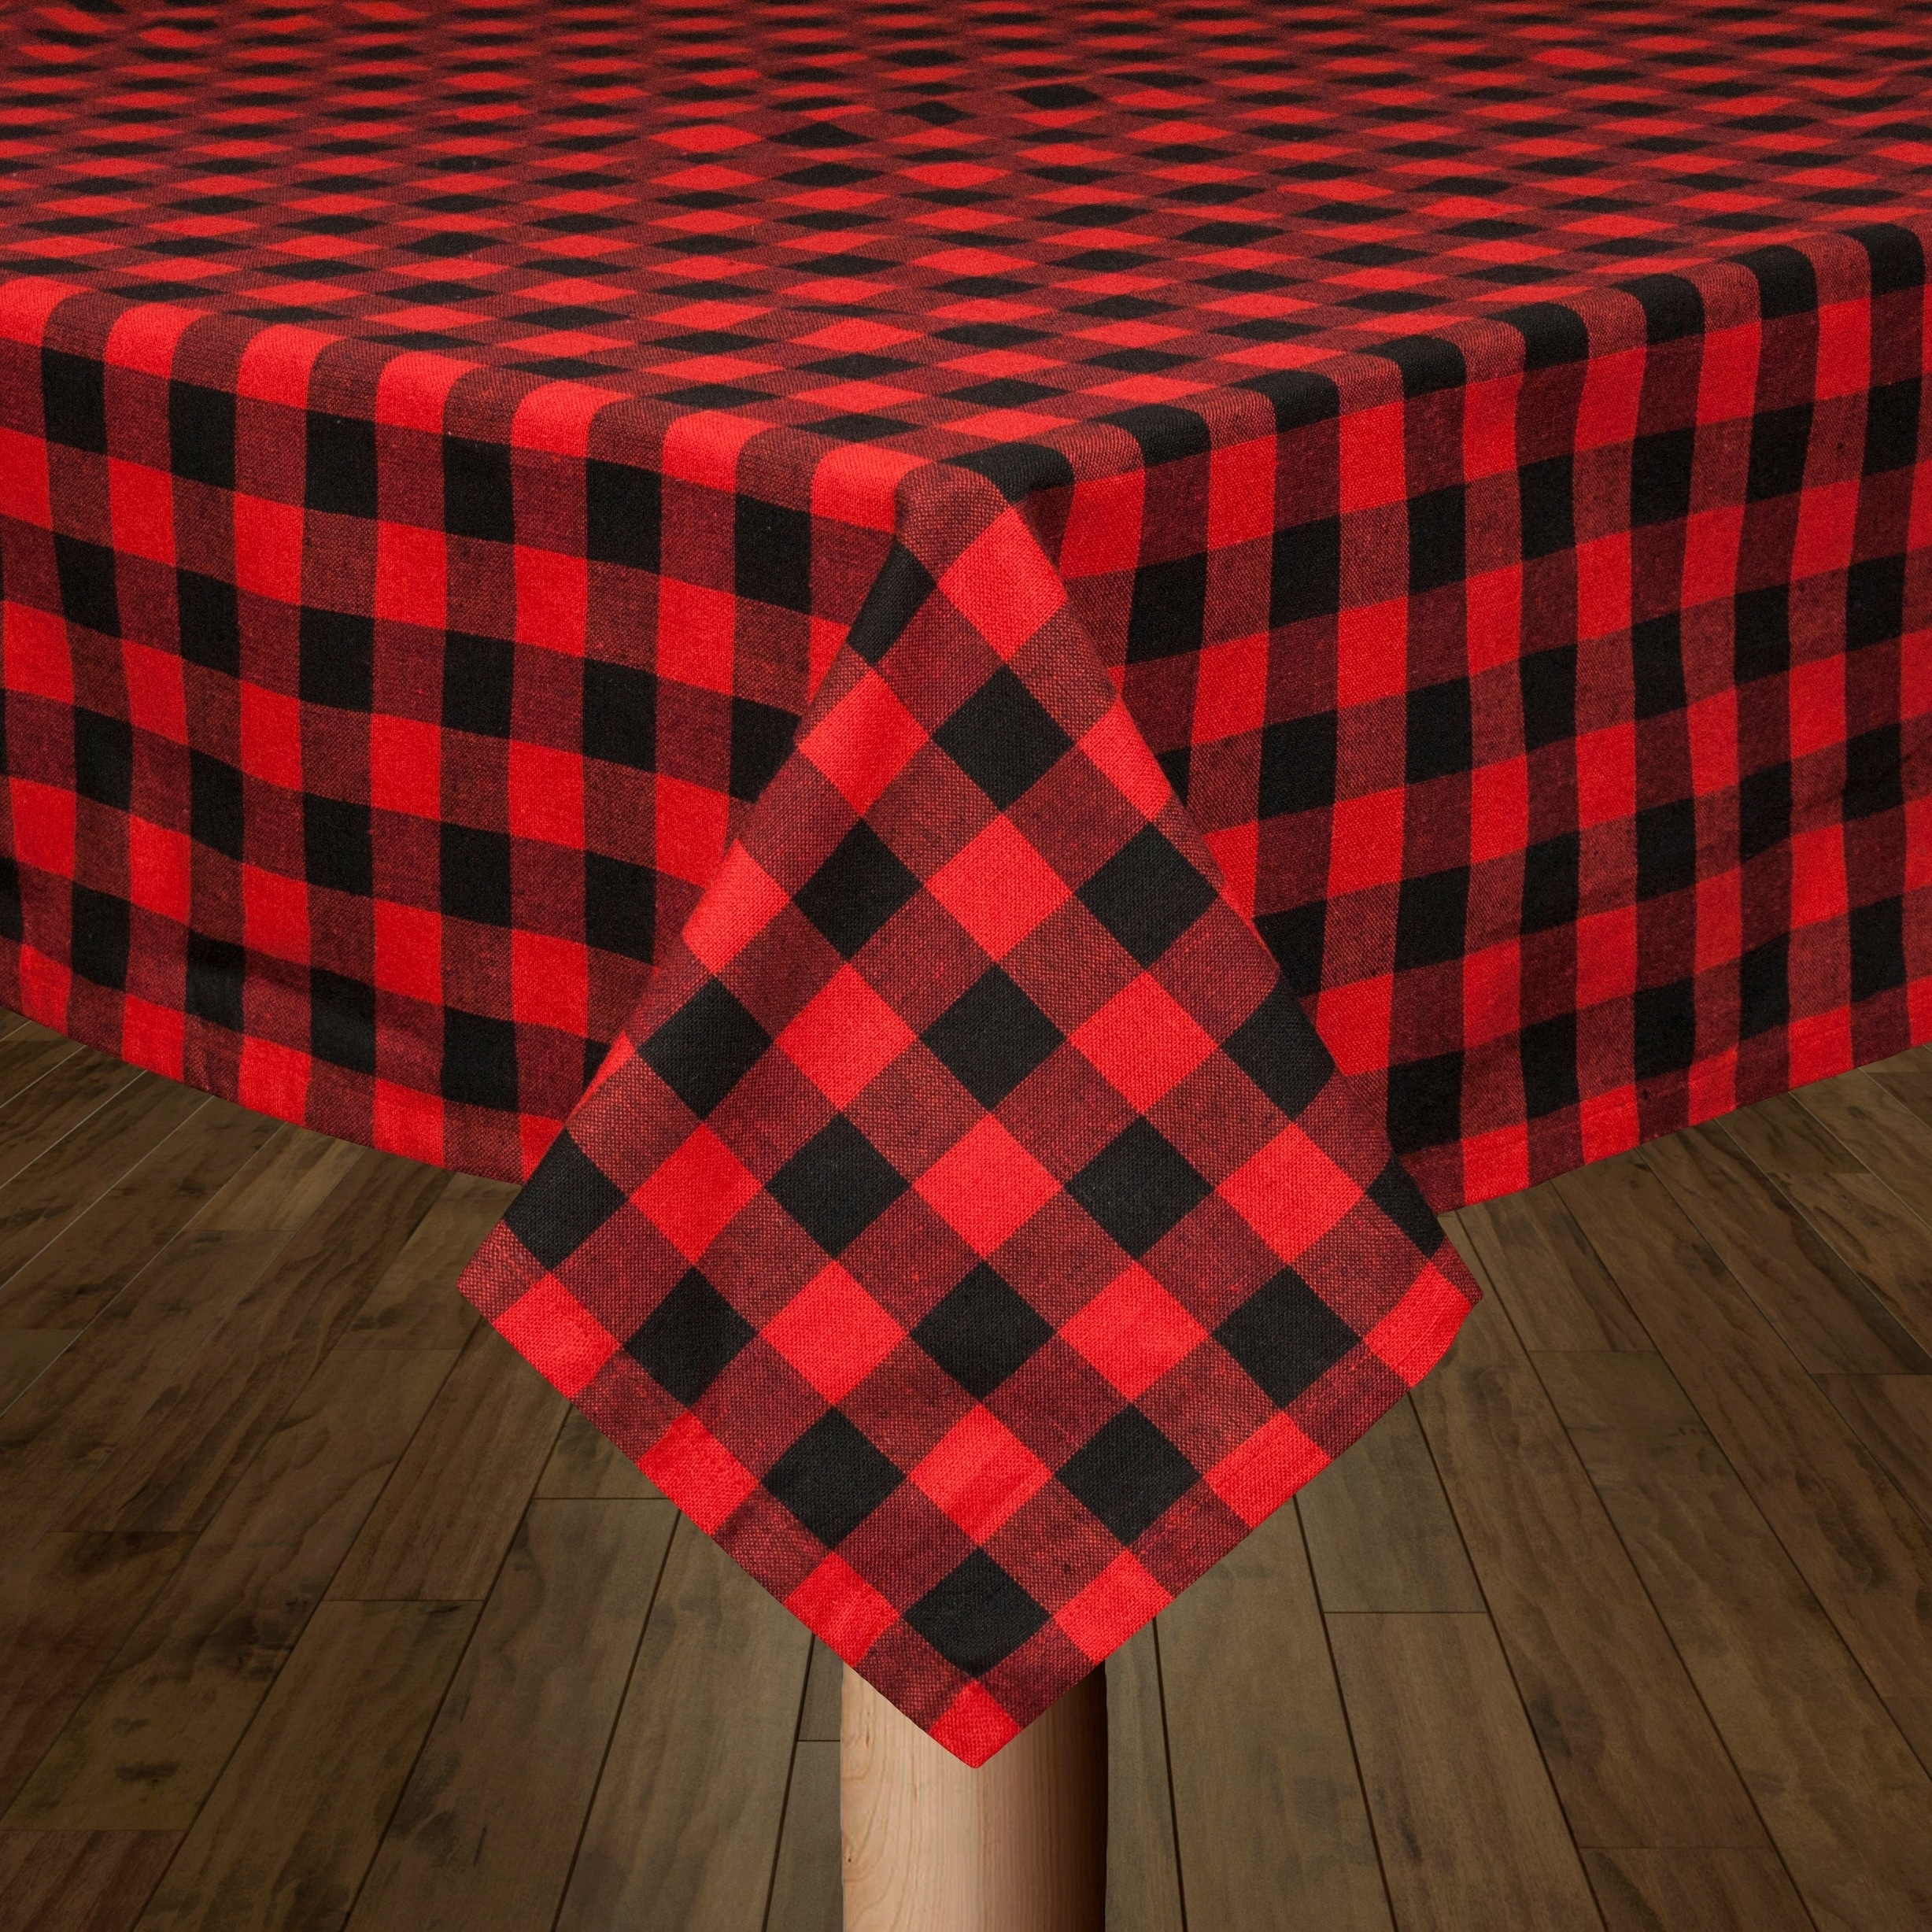 Buffalo Check Red And Black Tablecloth Free Shipping On Orders Over 45 24121414